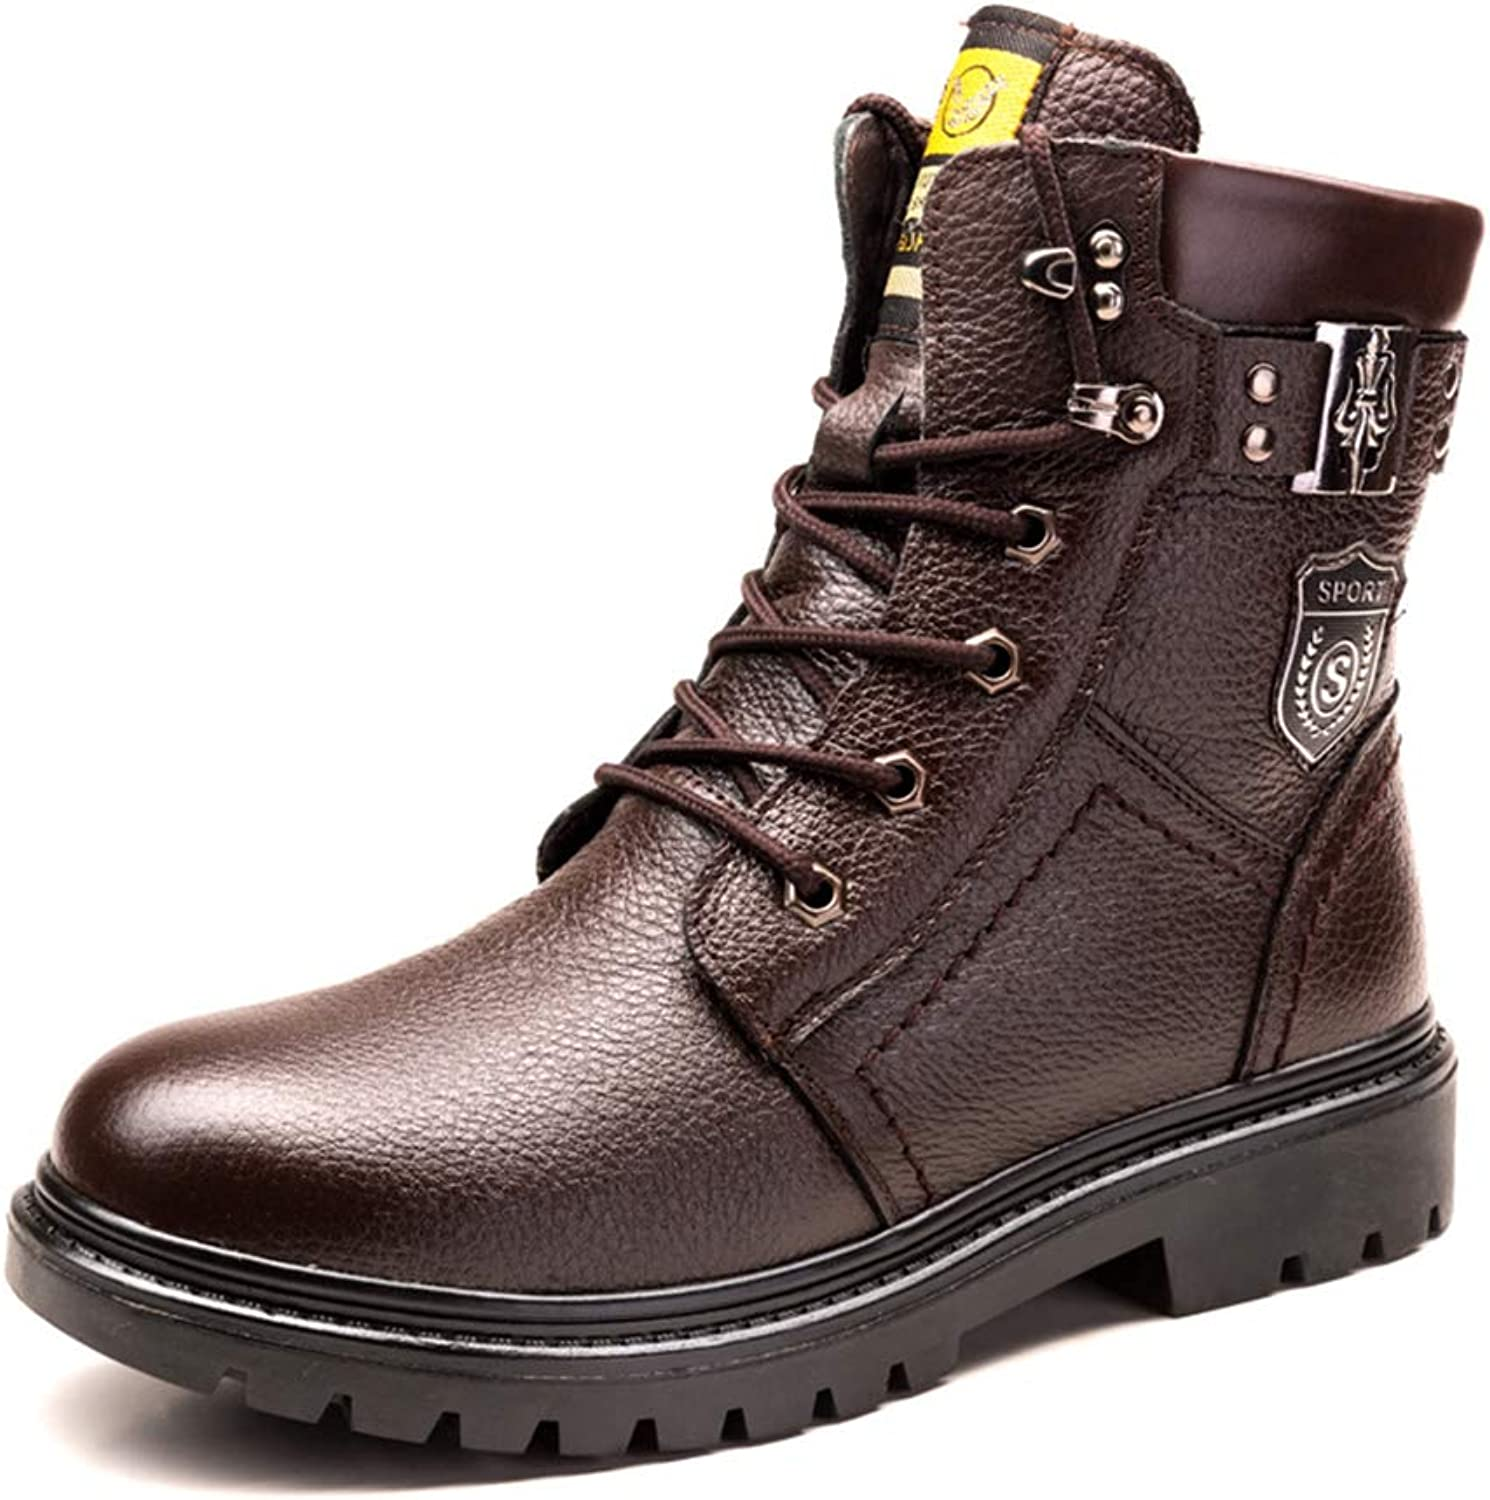 Mens Snow Boots Black Leather Martin Boots Warm Winter Motorcycle shoes Lace-up Mid-Calf Boots